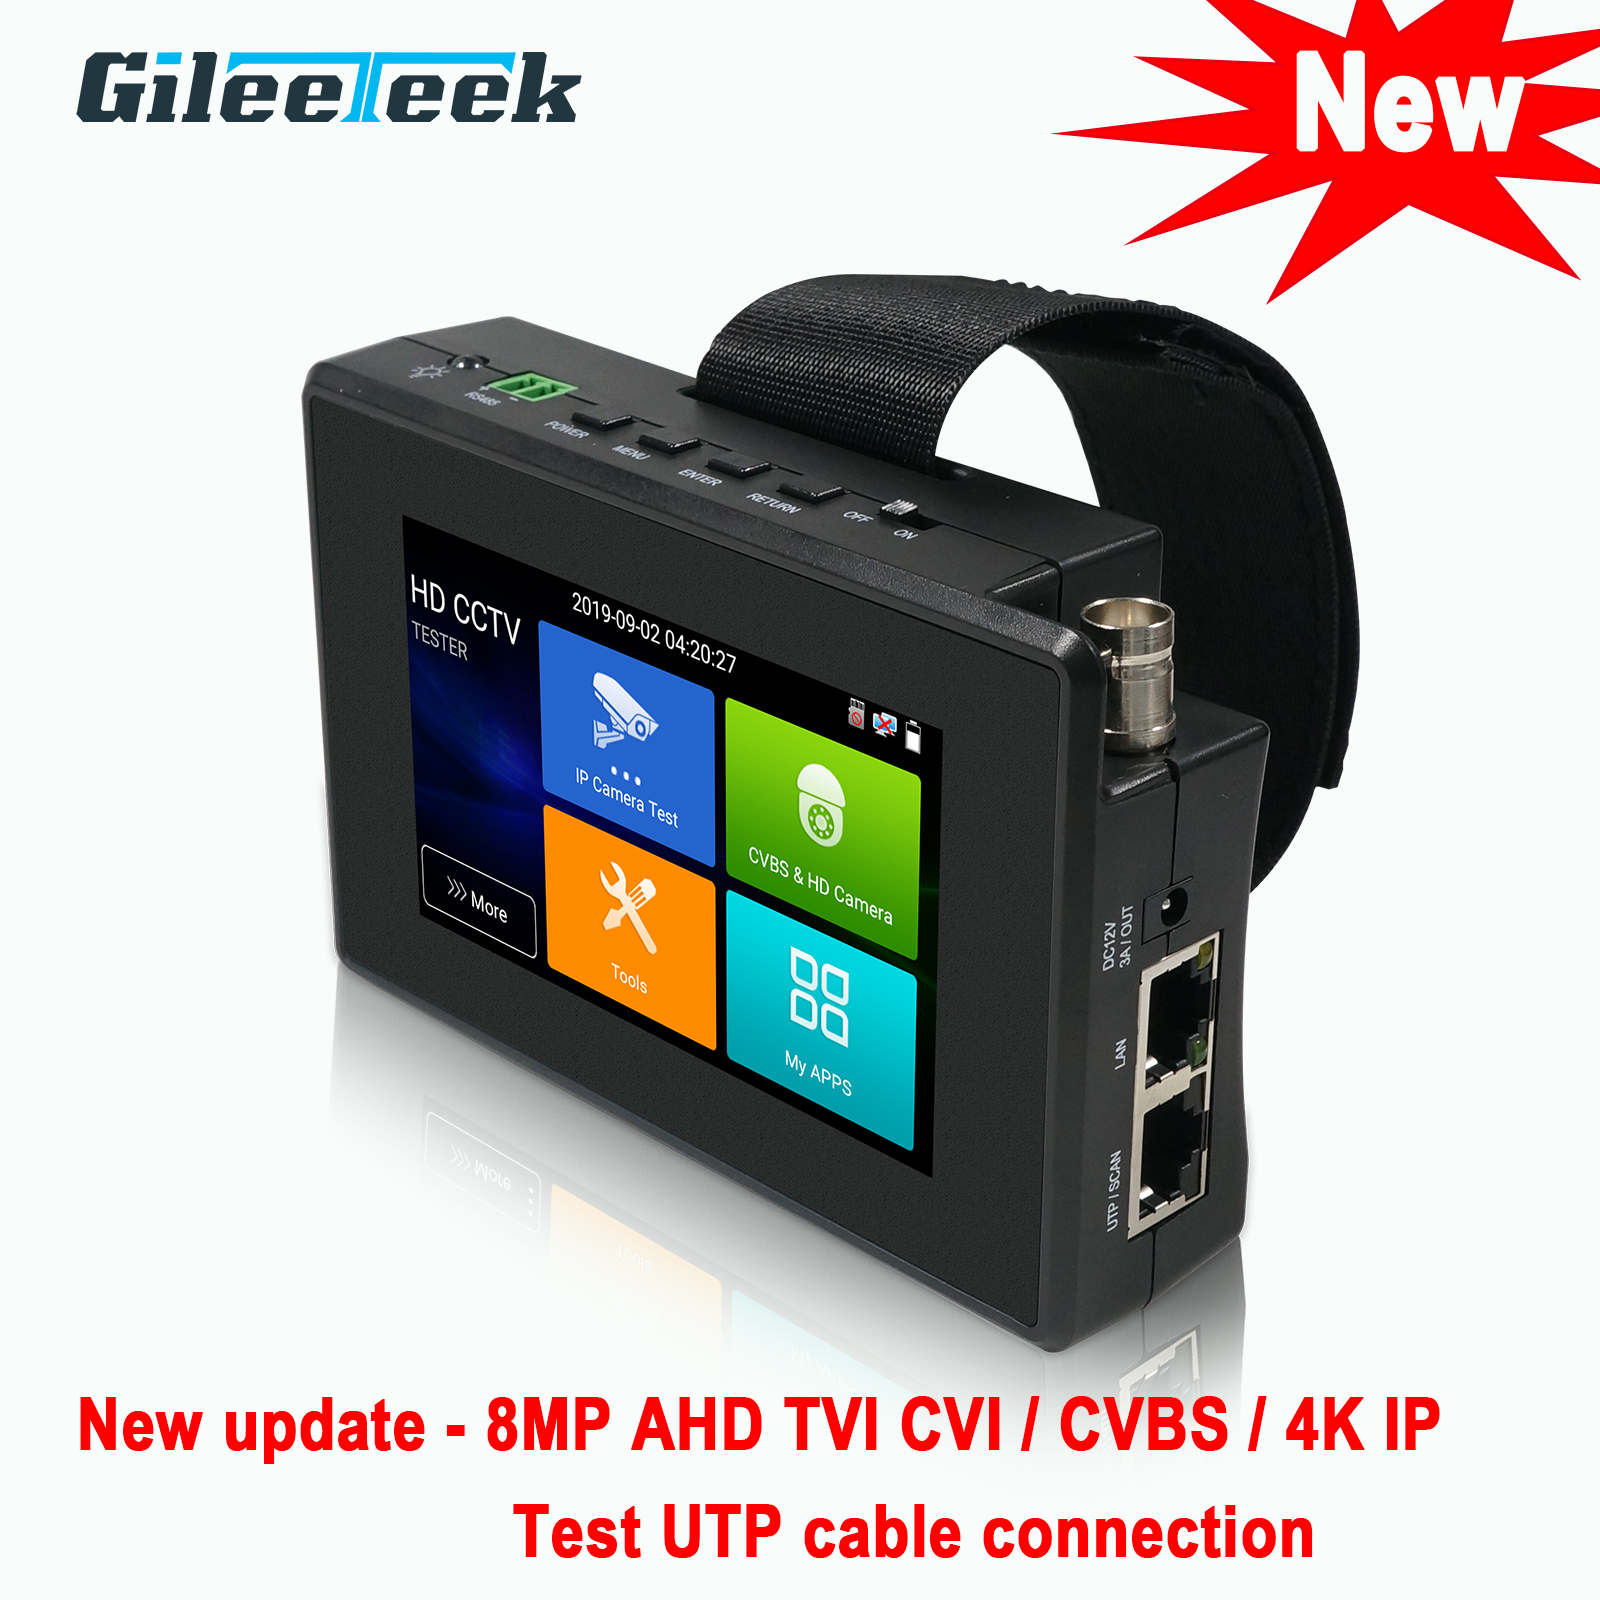 IPC1800ADH plus  cctv tester monitor 8MP TVI CVI CVBS 4K H.265 IP camera tester with New up-date Test UTP cable connection